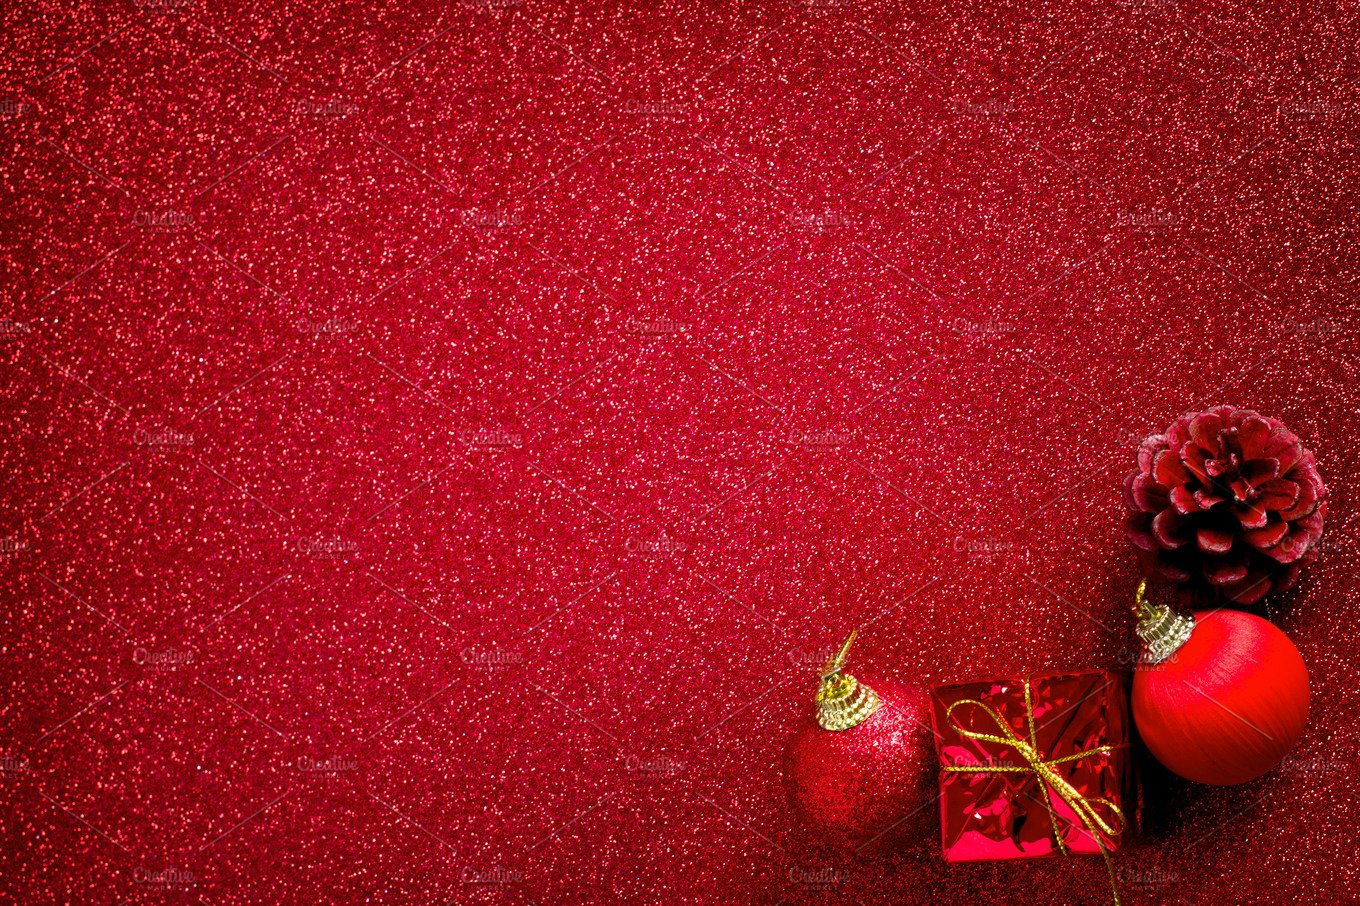 Red Christmas Background   High-Quality Holiday Stock Photos ~ Creative Market